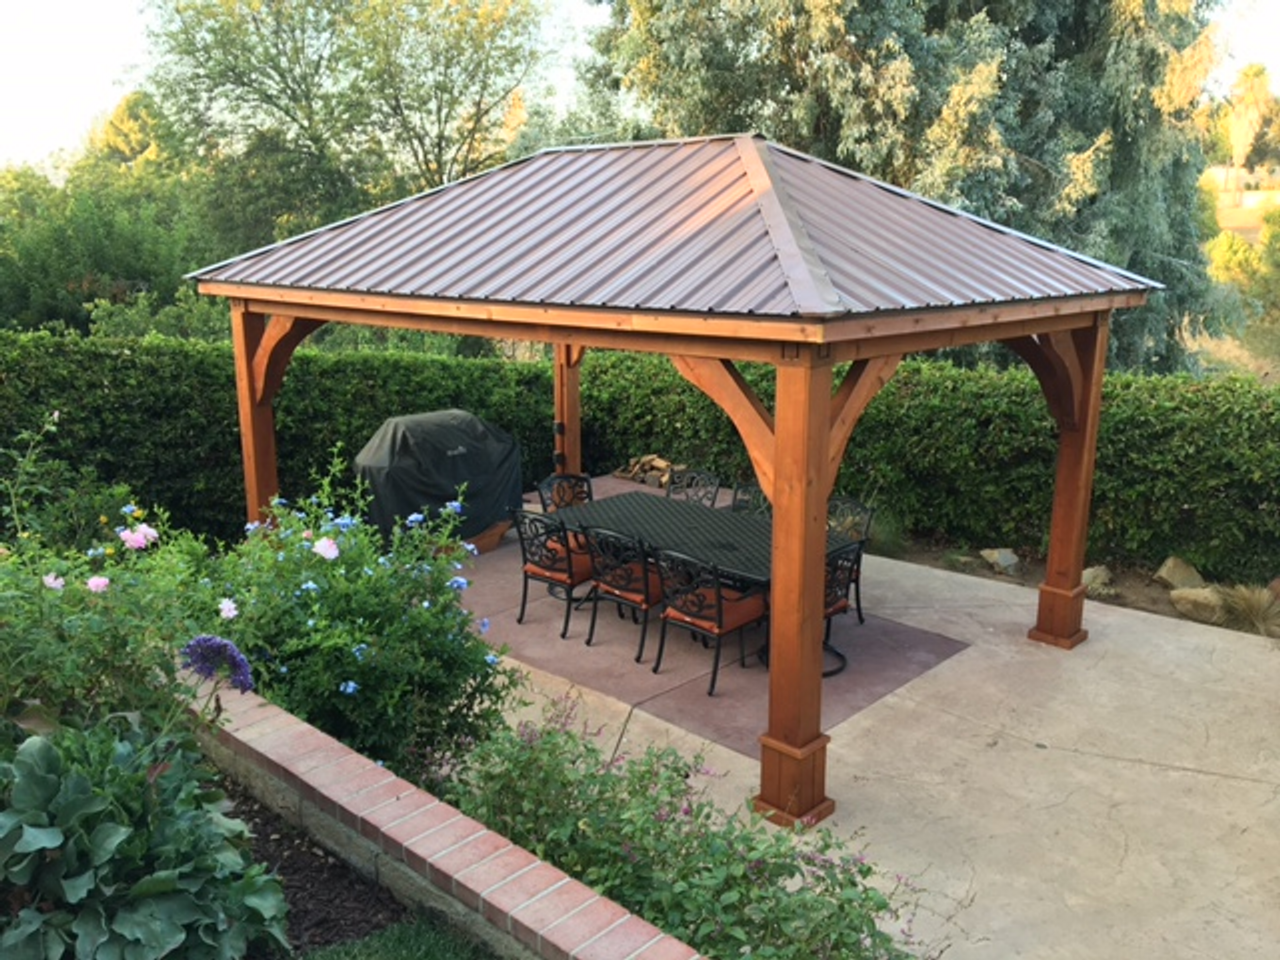 12x18 roof span pavilion / Traditional Roof design / Western Red Cedar/ 8x8 columns / Grand Cedar style corner braces / Brown Metal Roof option / Cedar color stain & sealant / Electrical Package / Simi Valley, CA